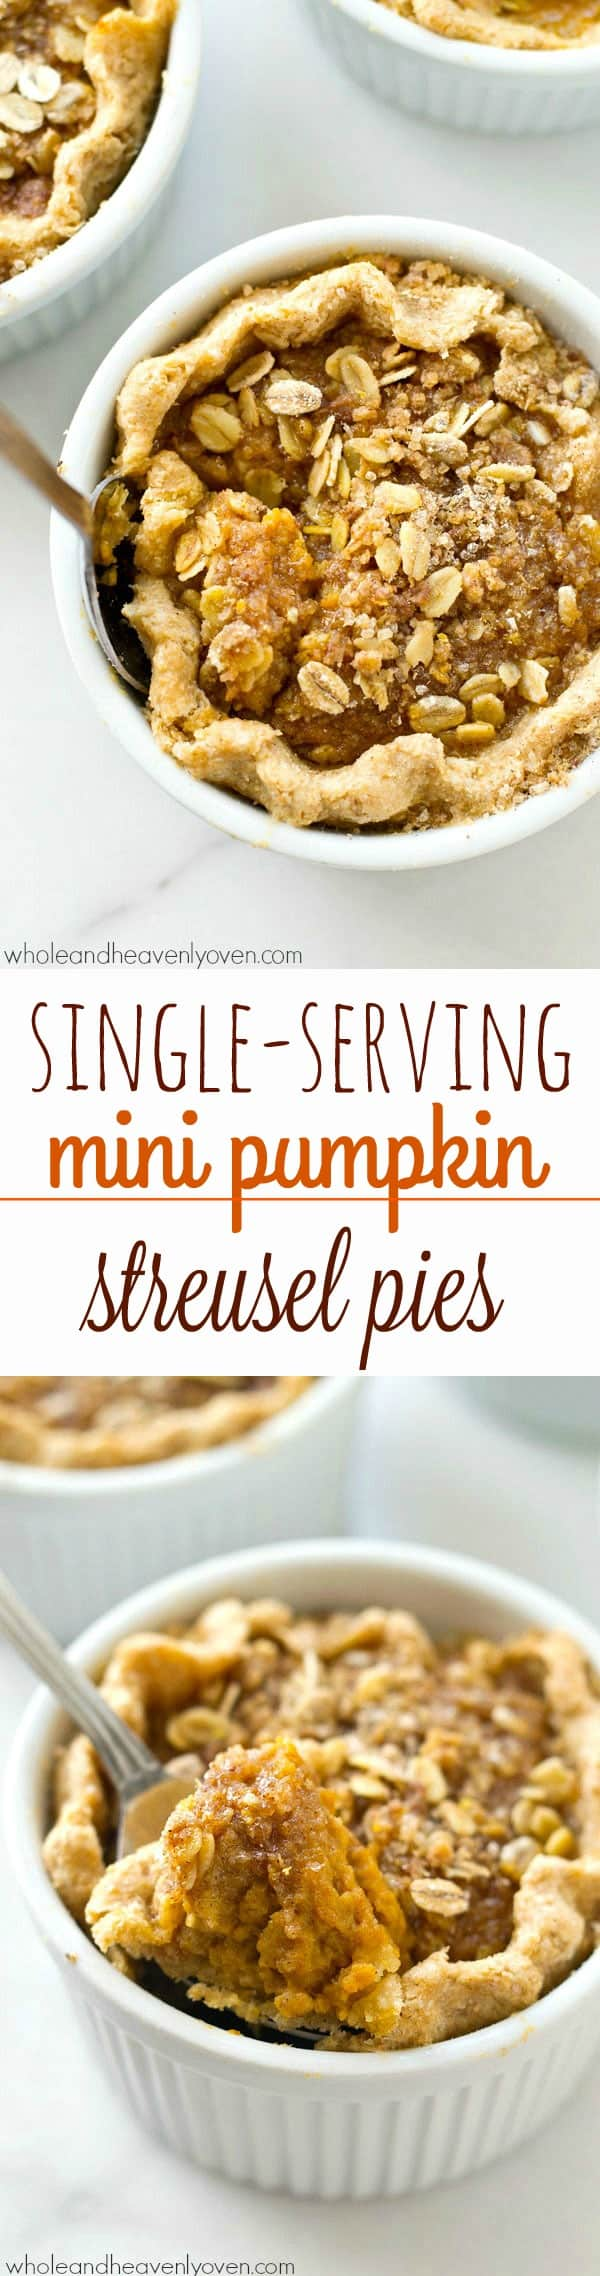 Loaded with buttery oat streusel on top of silky pumpkin filling, these mini pumpkin streusel pies are the perfect way to get your pumpkin pie fix...in personal-sized form! @WholeHeavenly